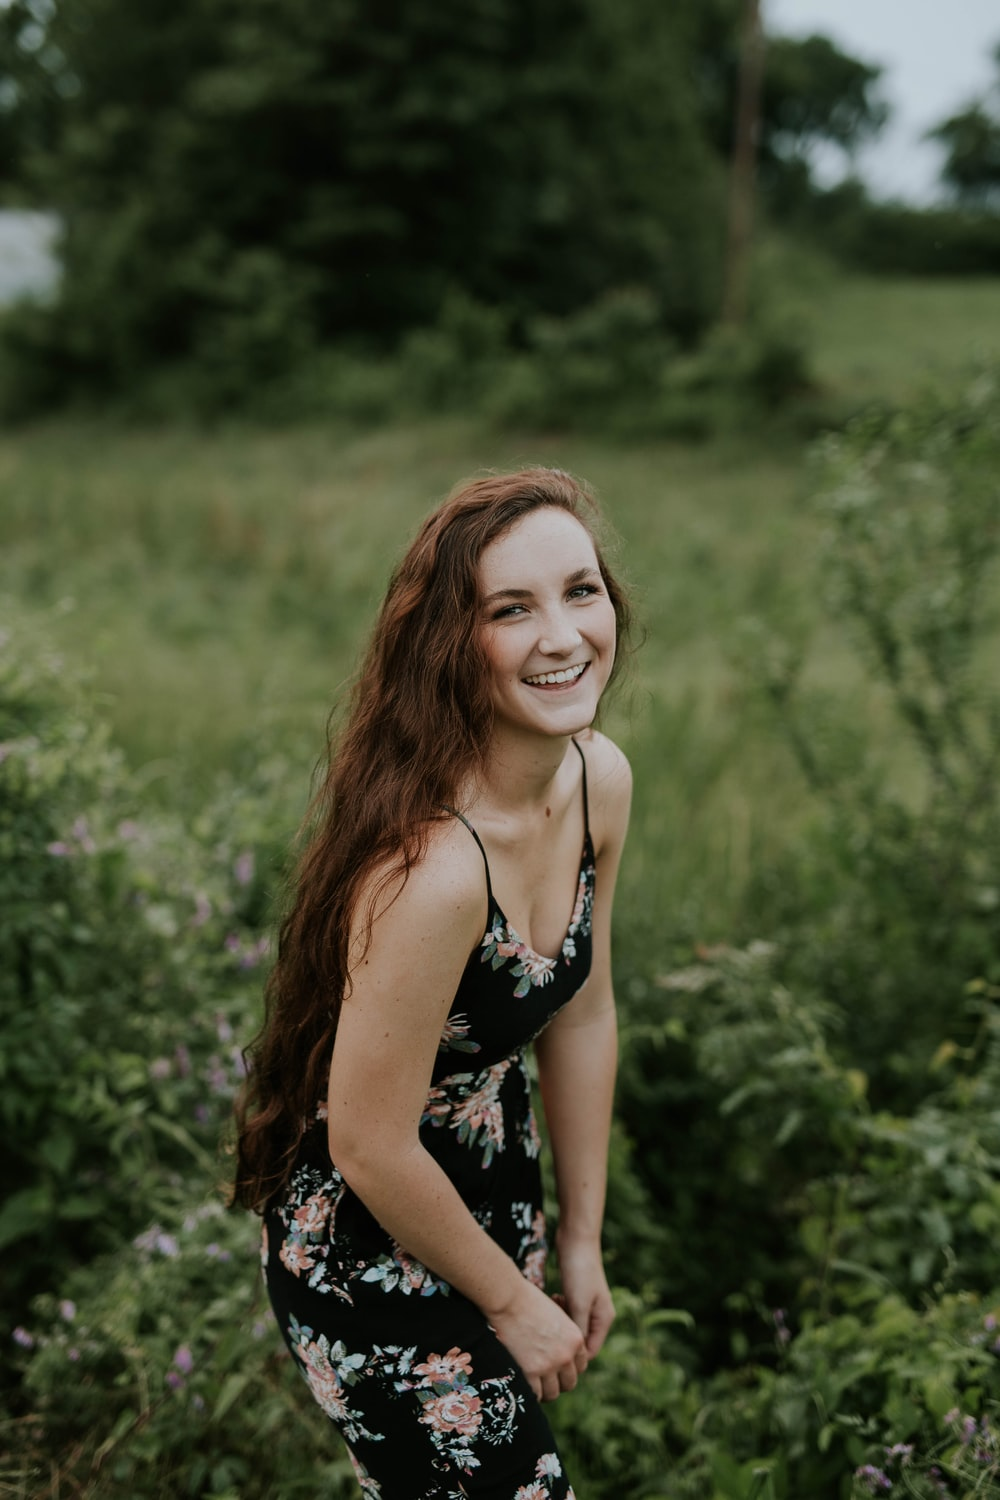 shallow focus photography of woman posing and smiling at camera